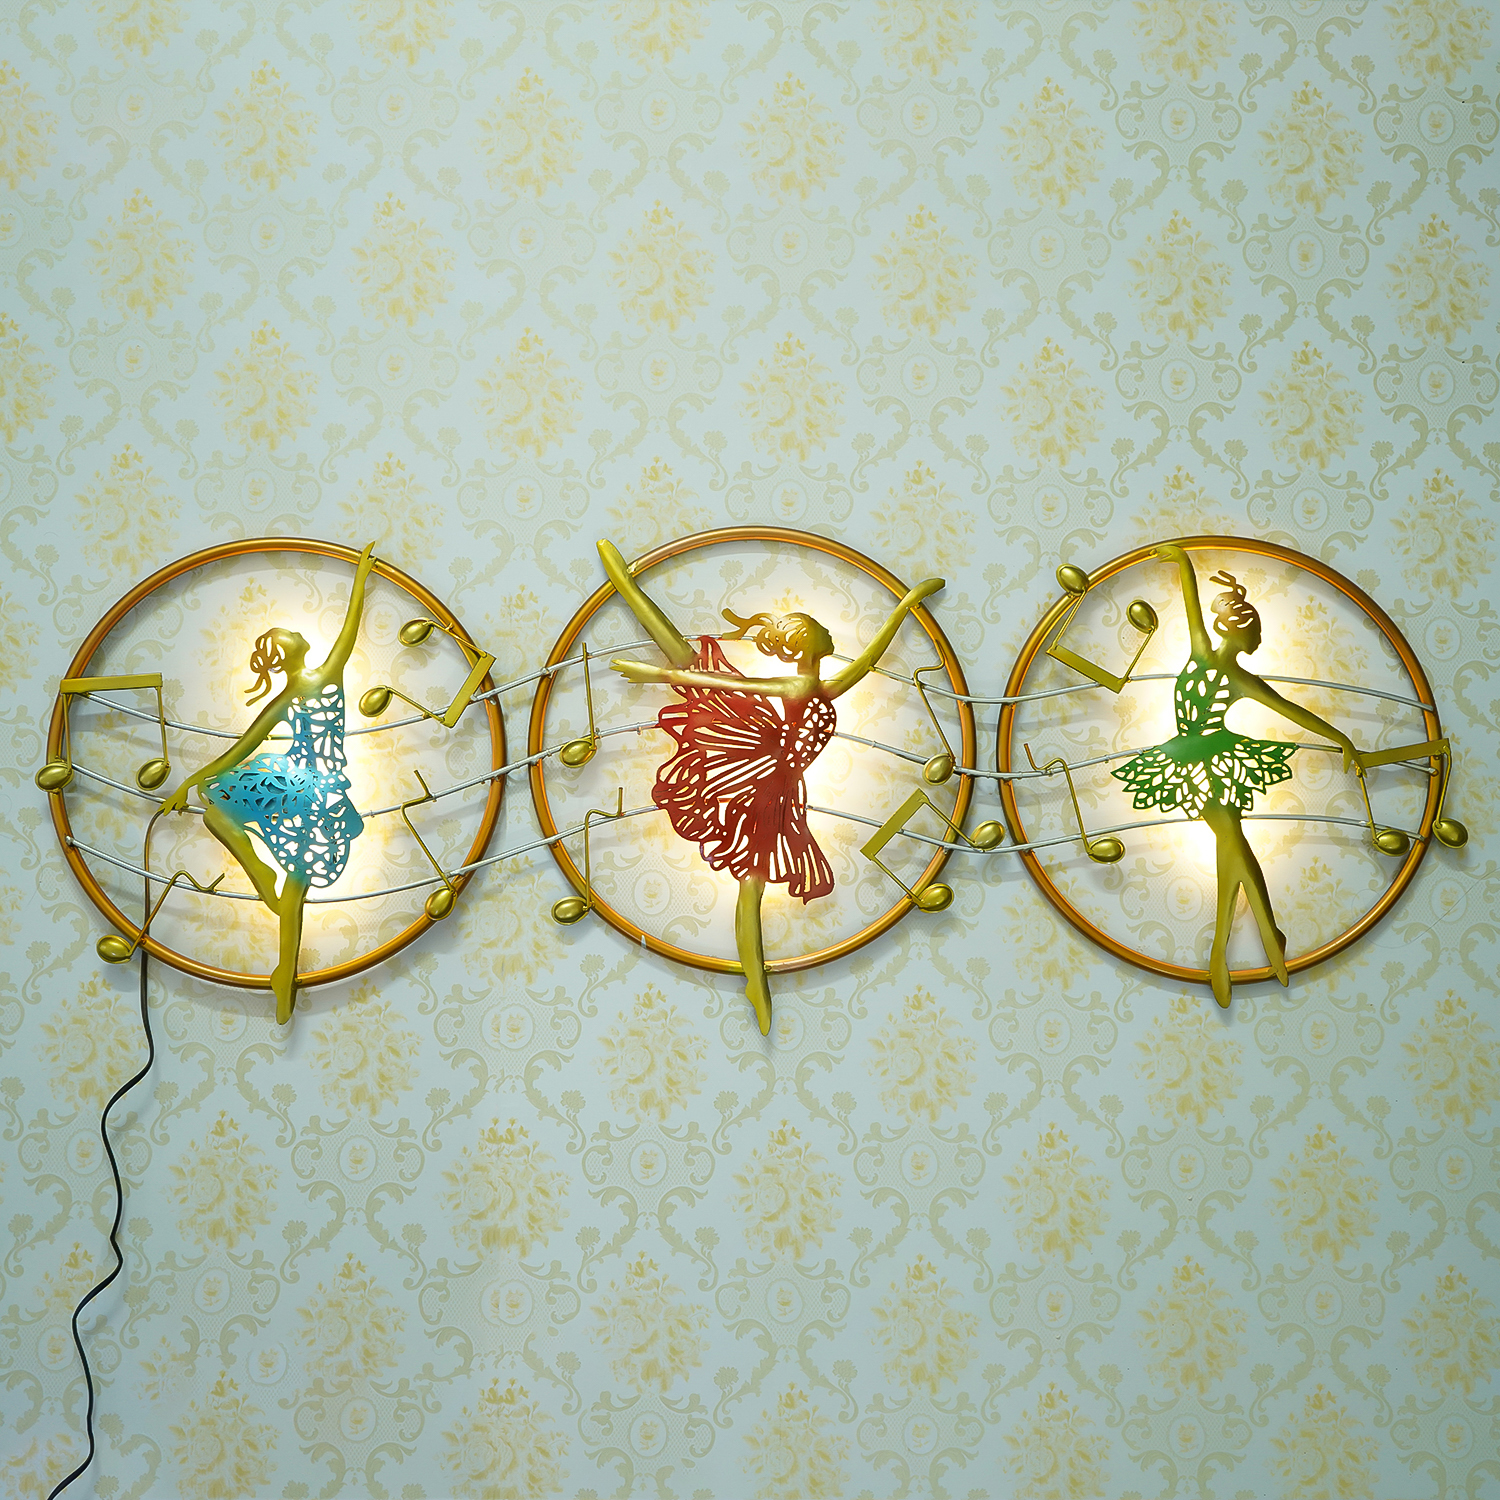 Set of 3 Dancing Lady Handcrafted Iron Wall Hanging with background LEDs Indian Home Decor